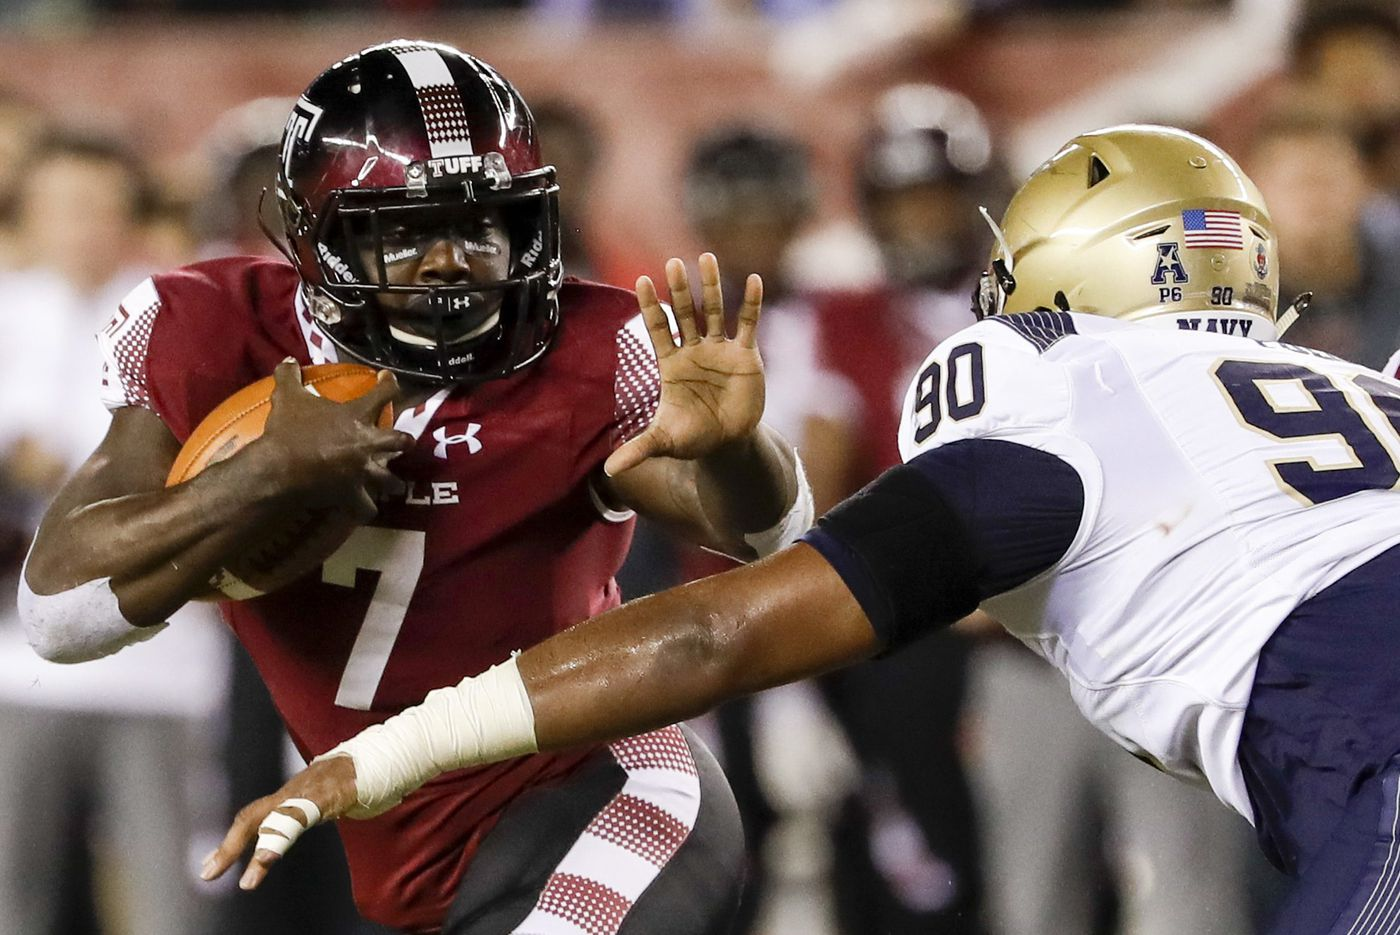 If he stays healthy, Ryquell Armstead could be one of the best in the AAC | Temple running backs preview